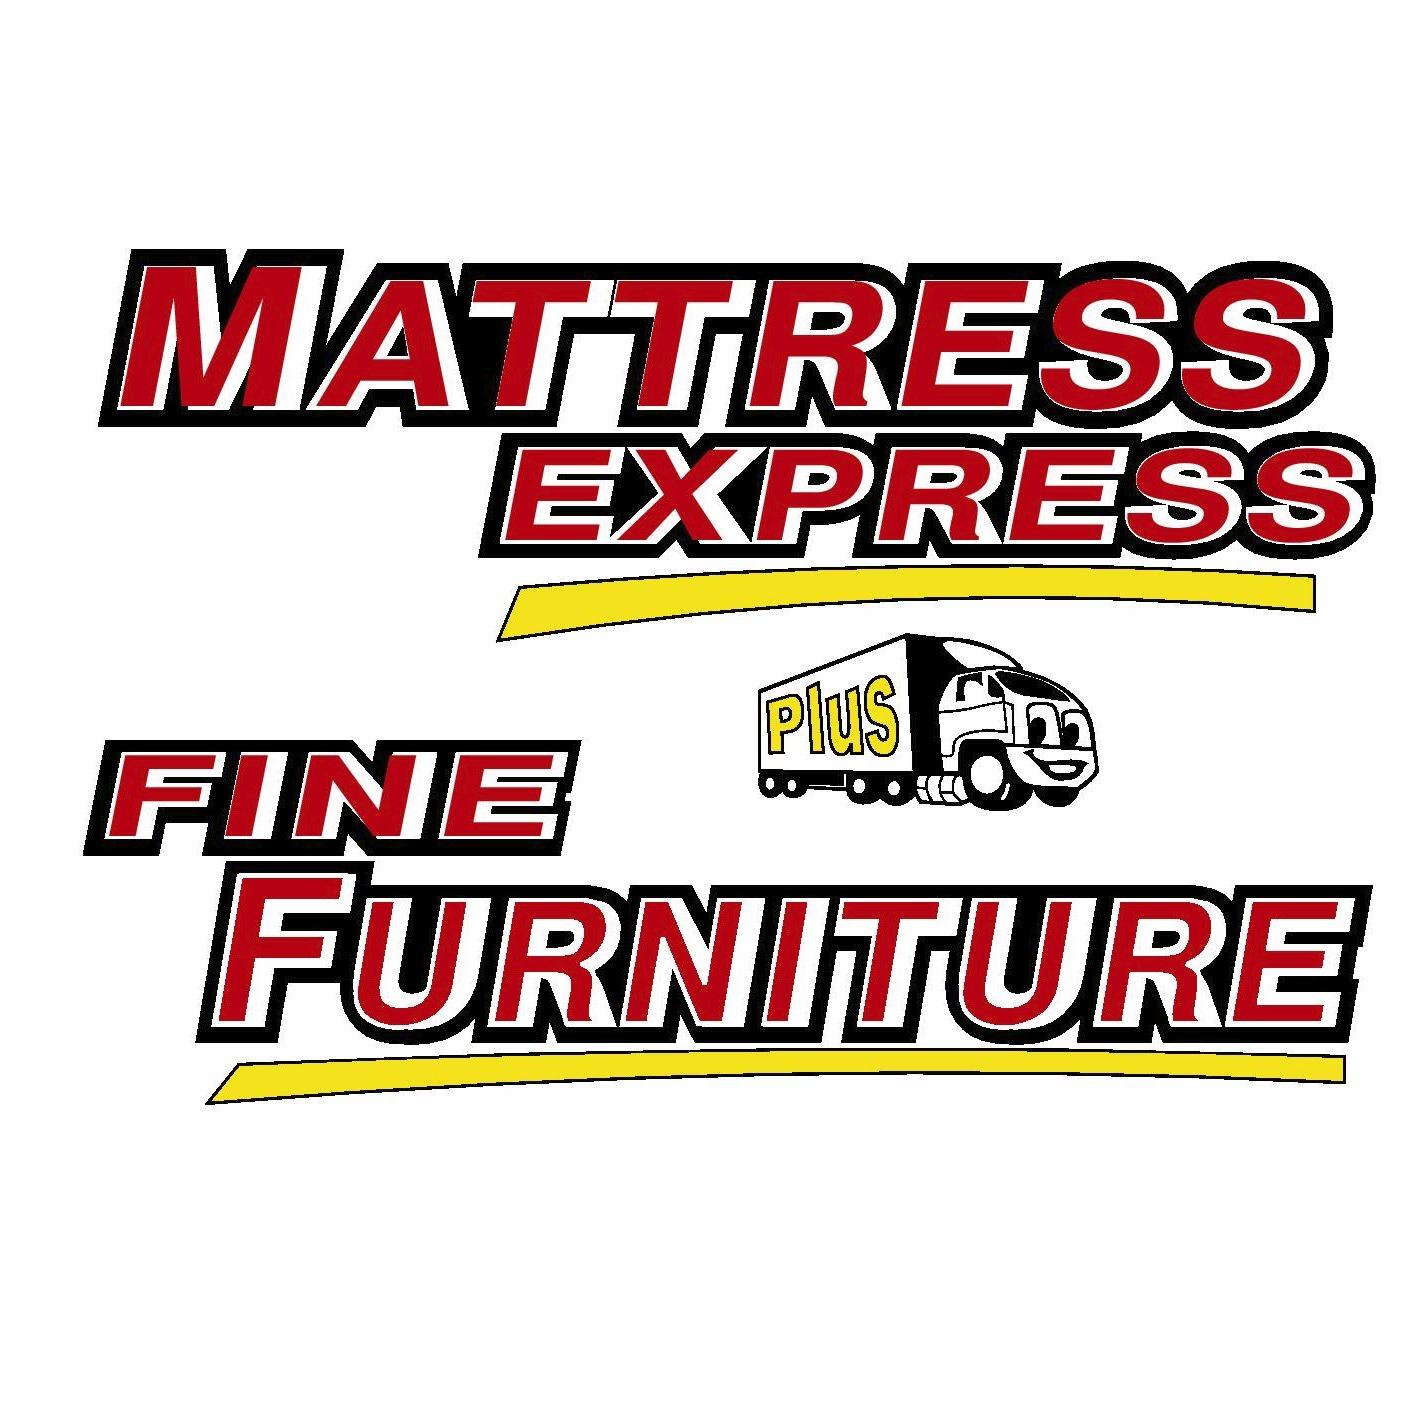 Mattress Express Plus Fine Furniture image 5